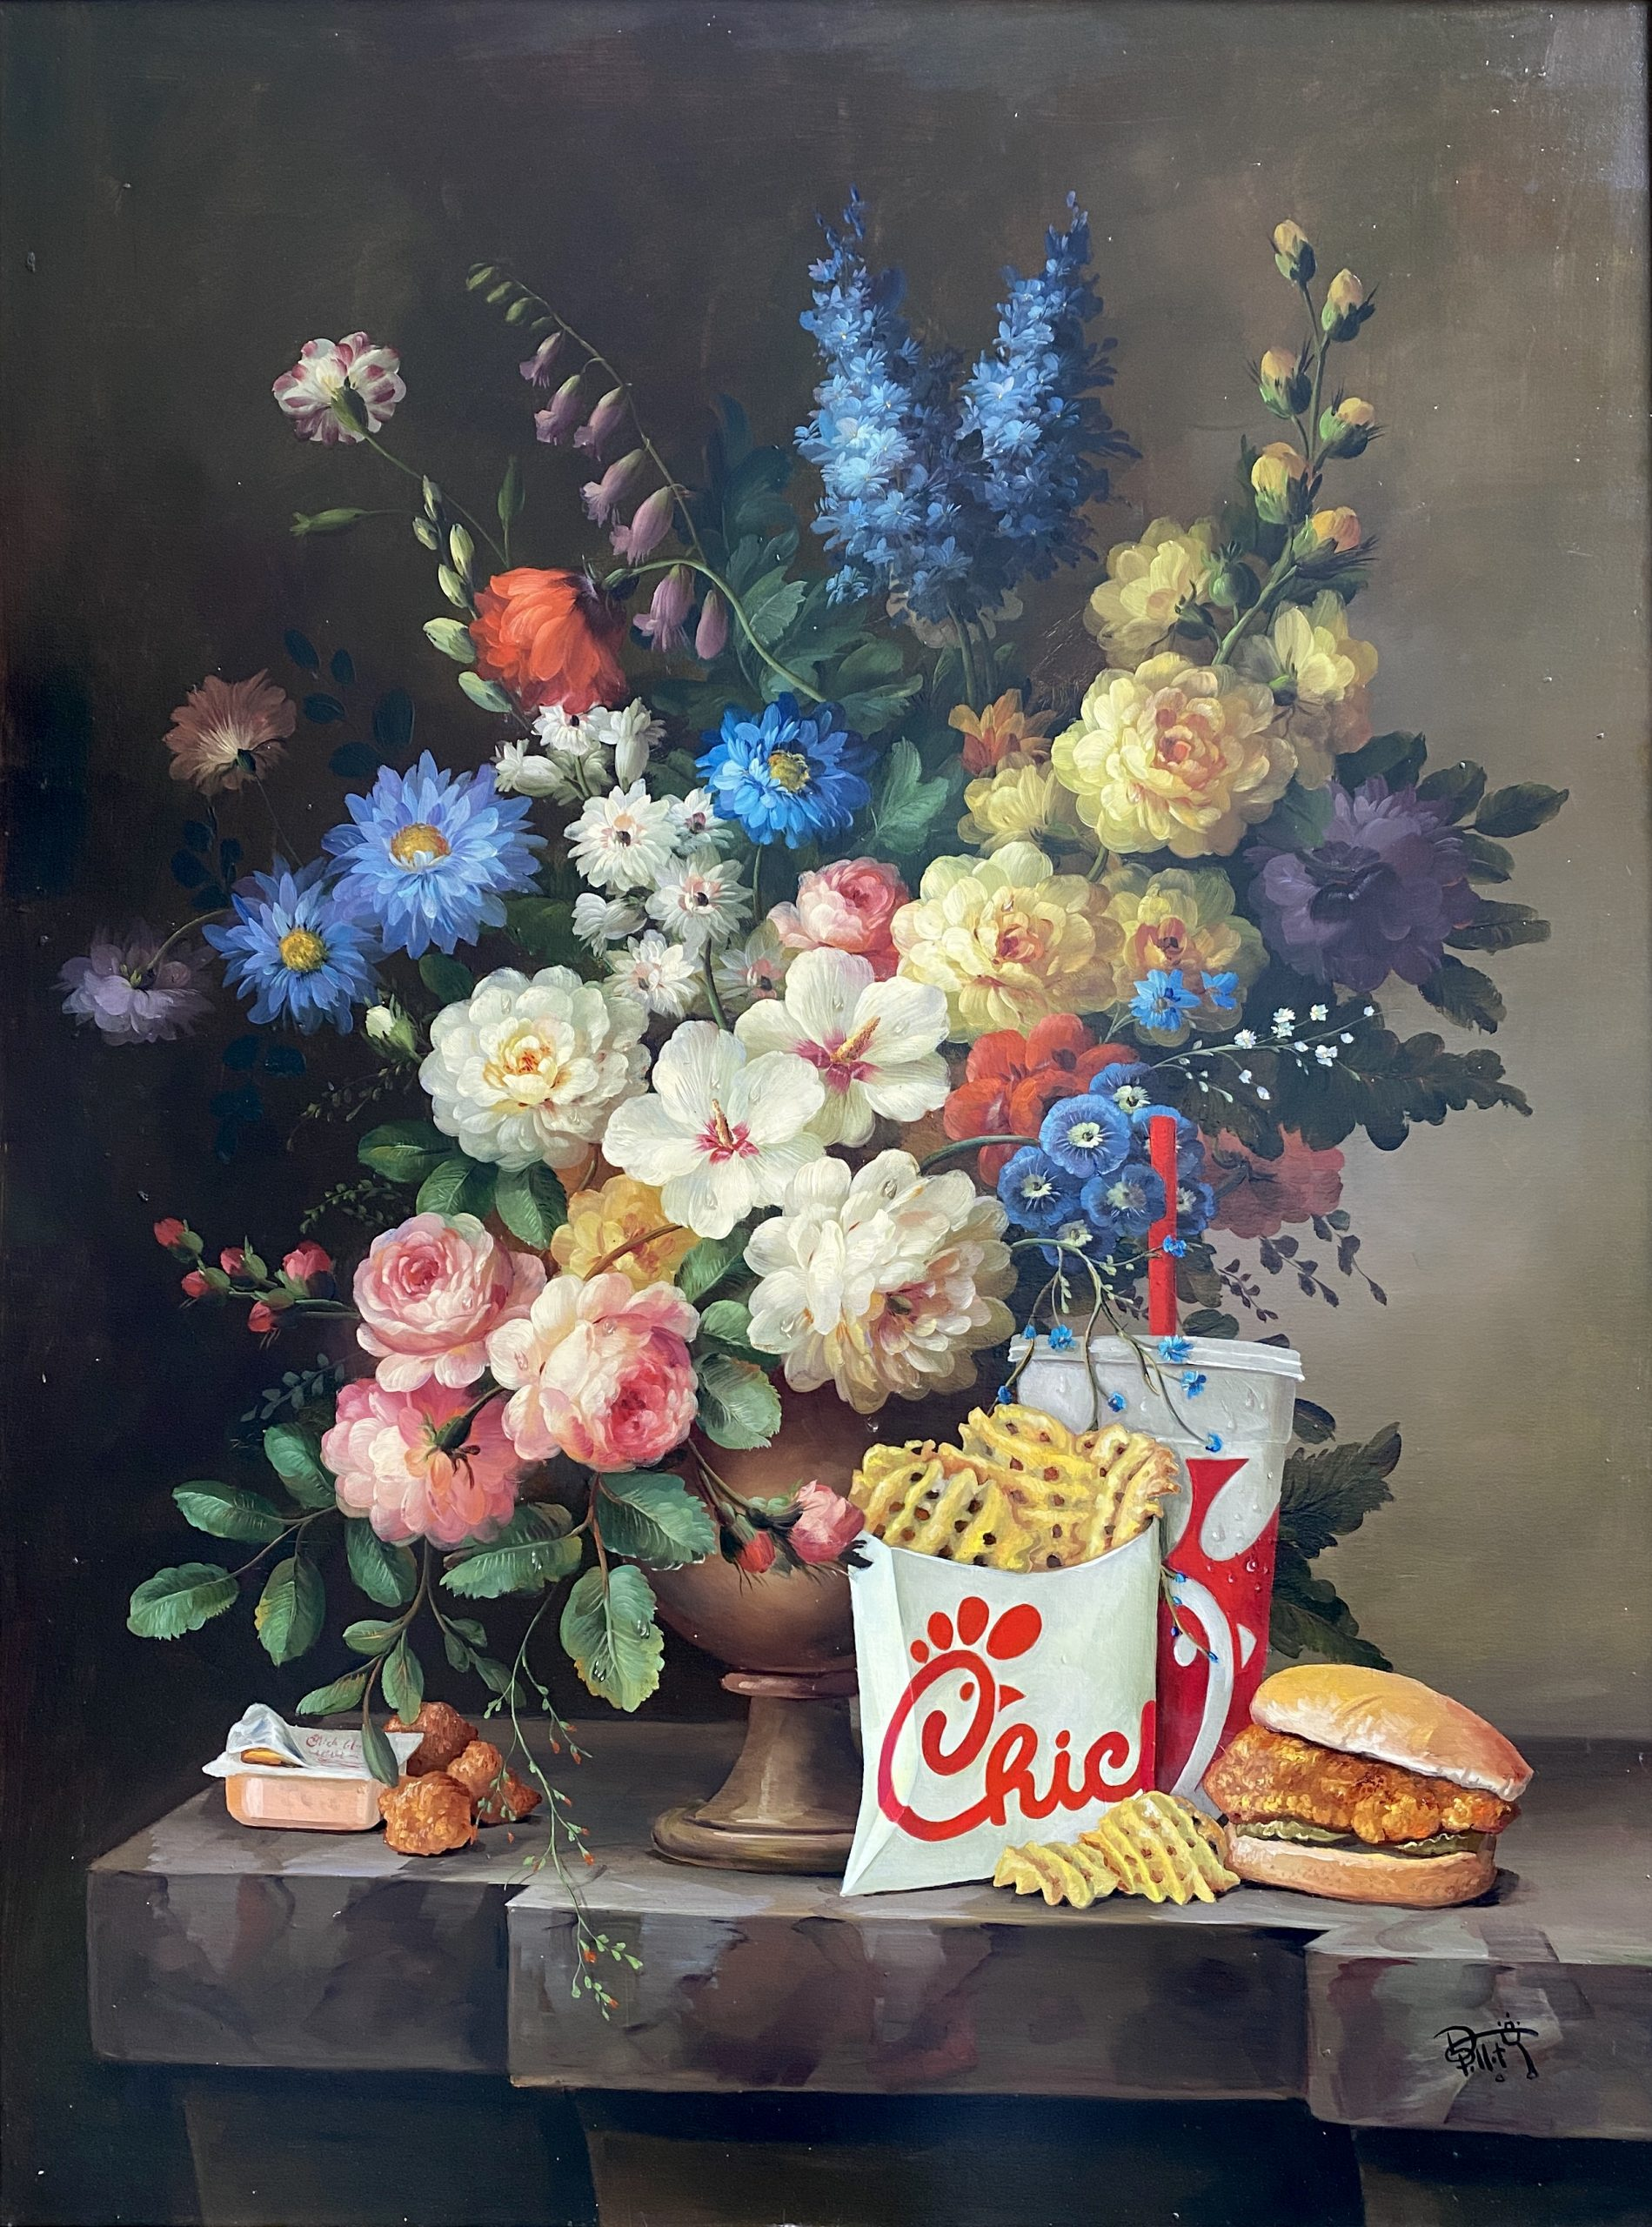 Calorie Composition 7 (Chick-fil-a) by Dave Pollot